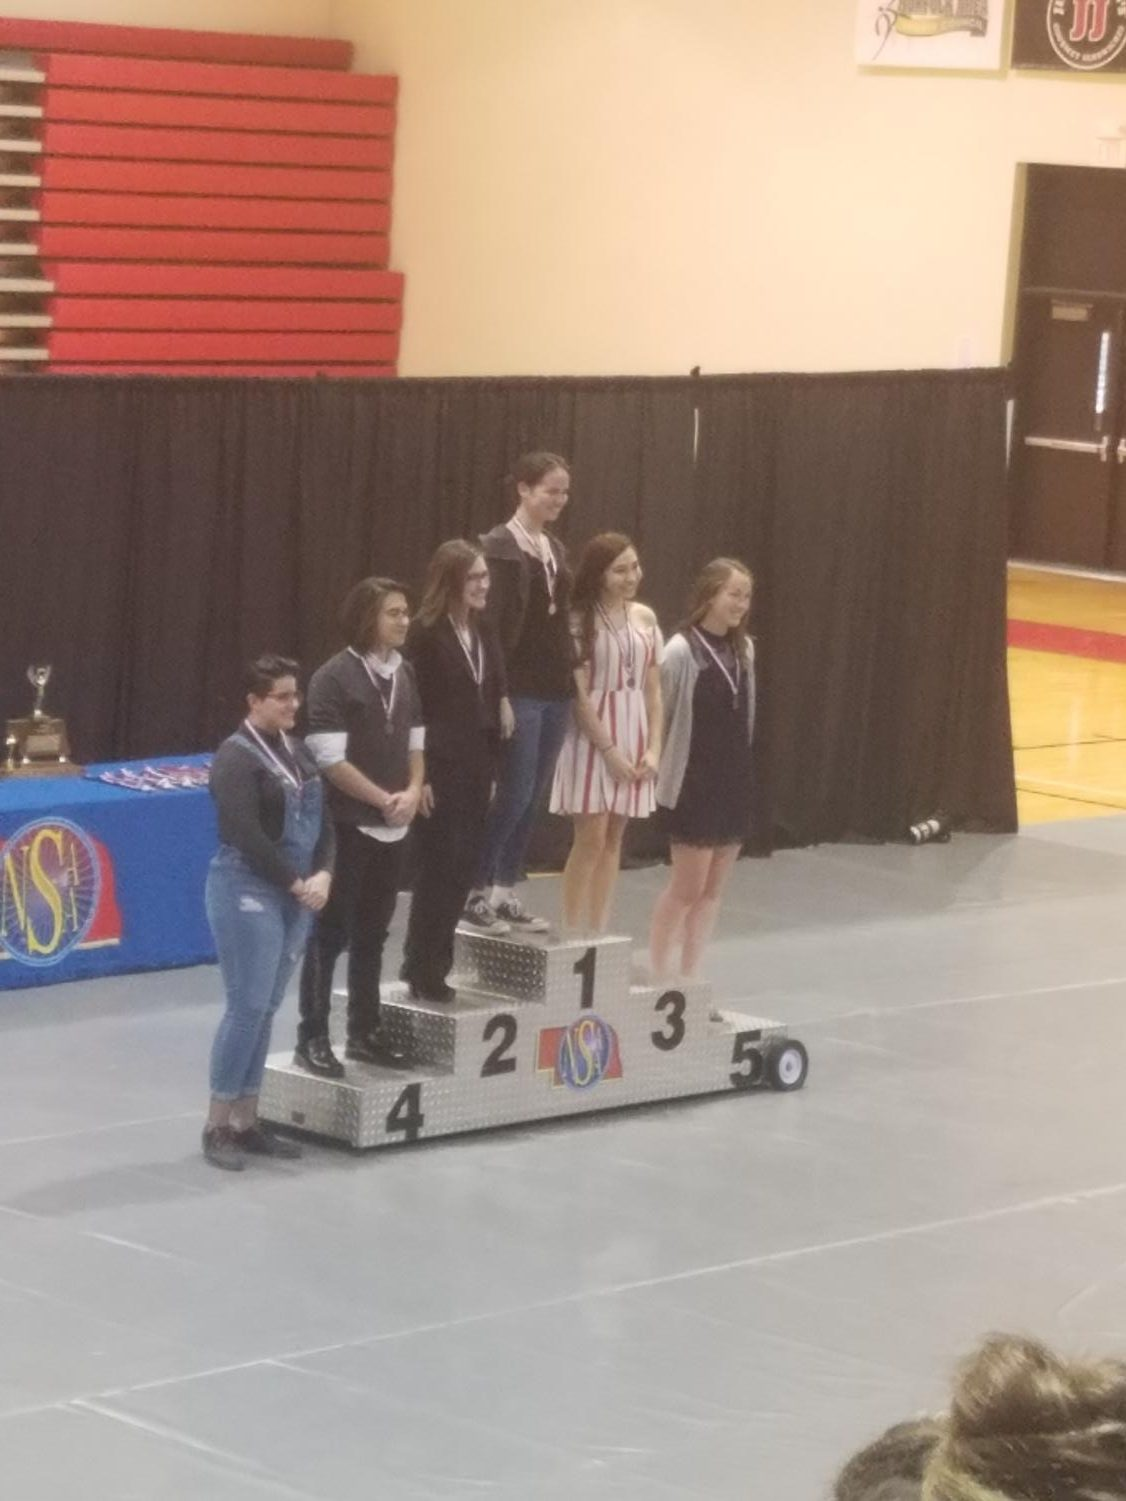 Devon Walter poses for a picture on the podium for first place, standing beside the other students who placed in the top 6 in Layout Design. Photo by Angel Trinh.